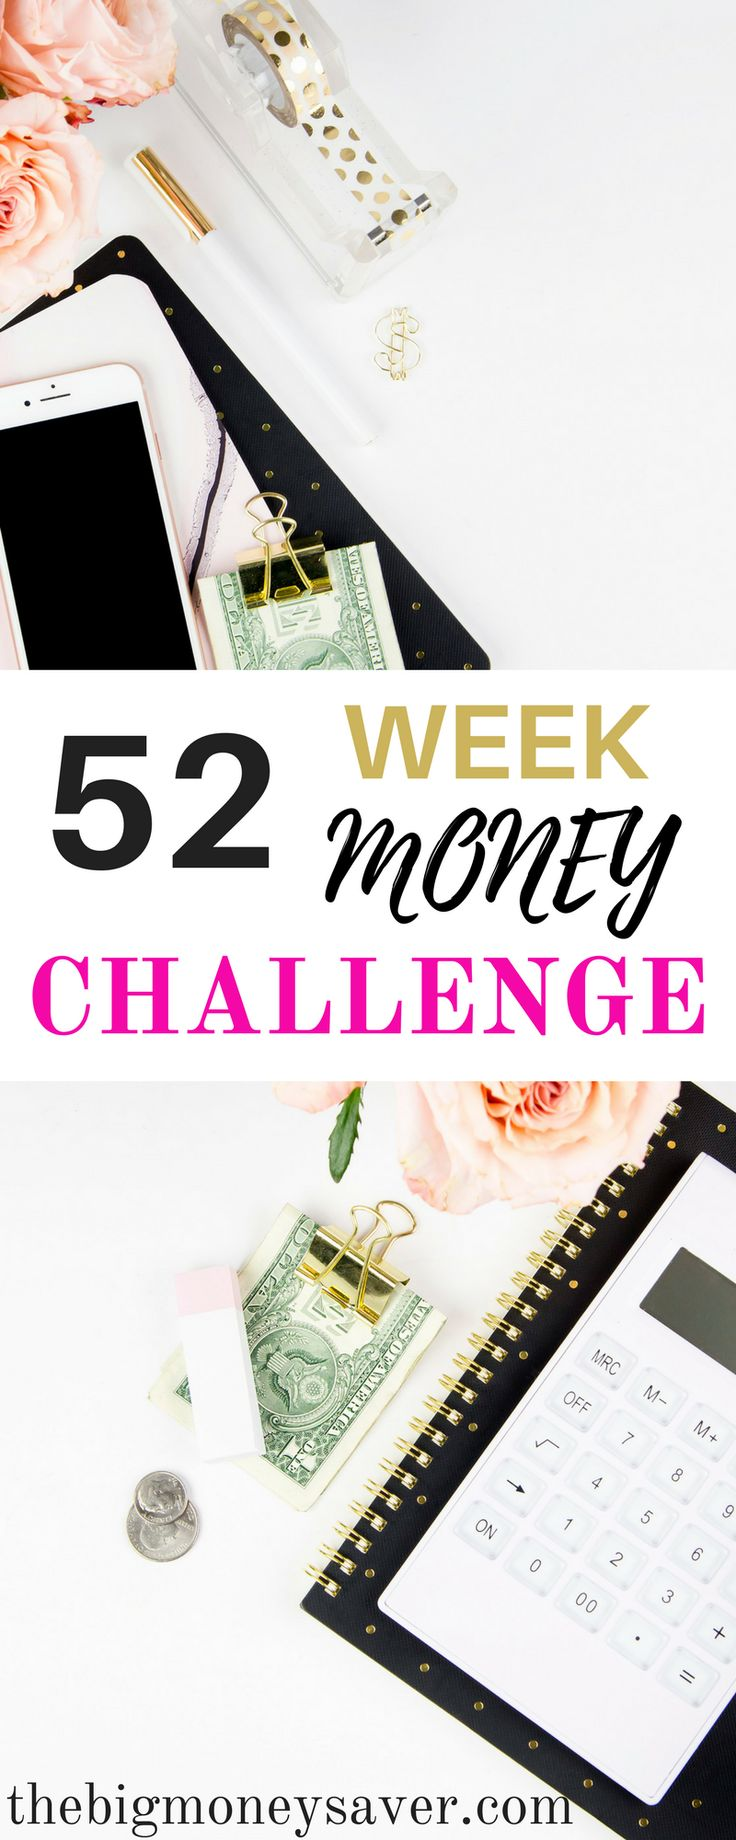 If you're feeling hopeless about saving money, here's your answer! Saving money is made possible and manageable for you with this FREE 52-week money challenge.